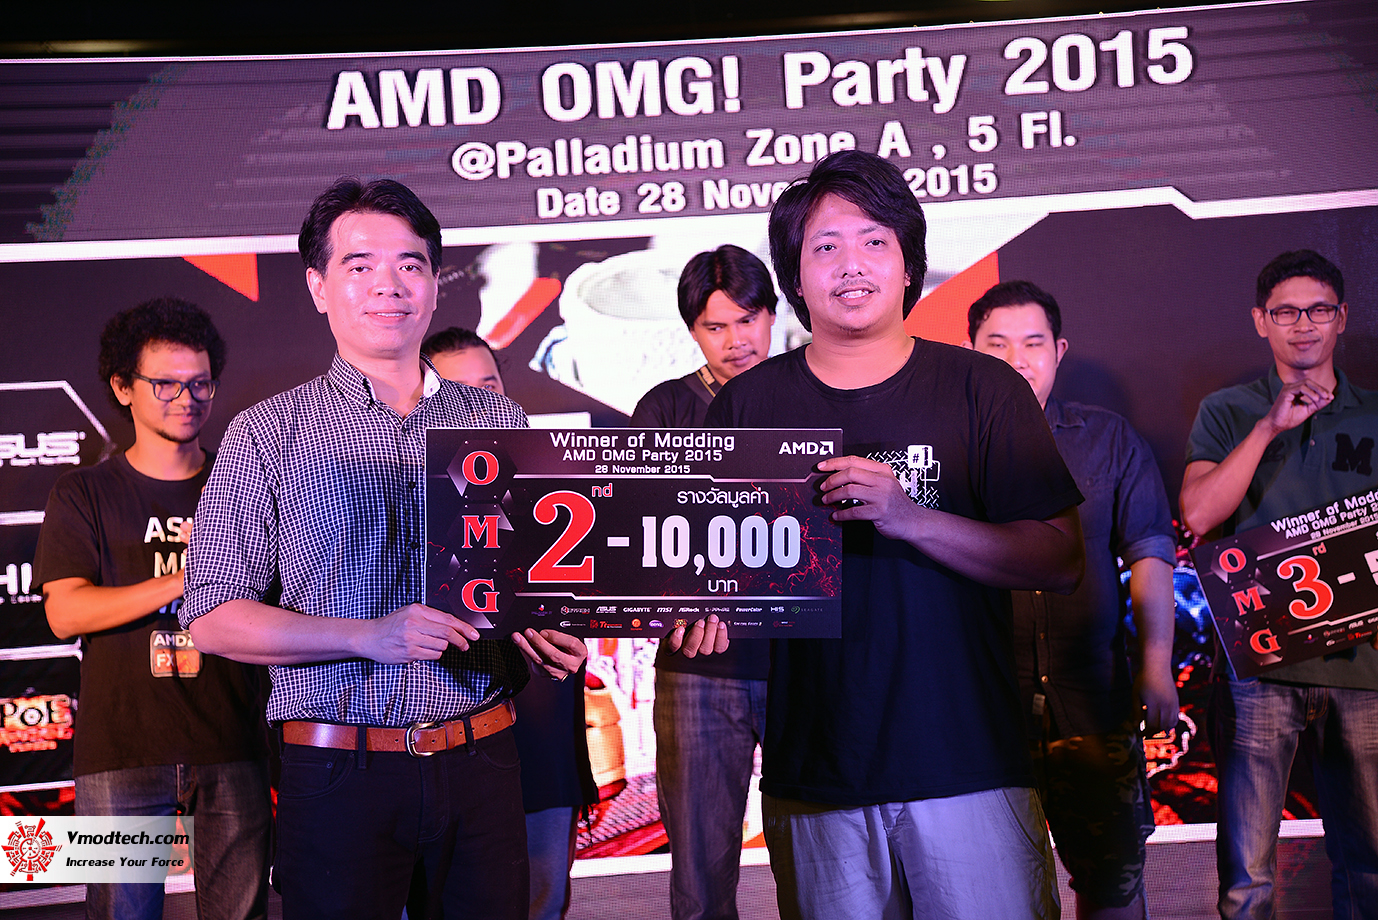 dsc 8076 AMD OMG! Party 2015 (AMD Overclock Modding Gaming Party 2015)